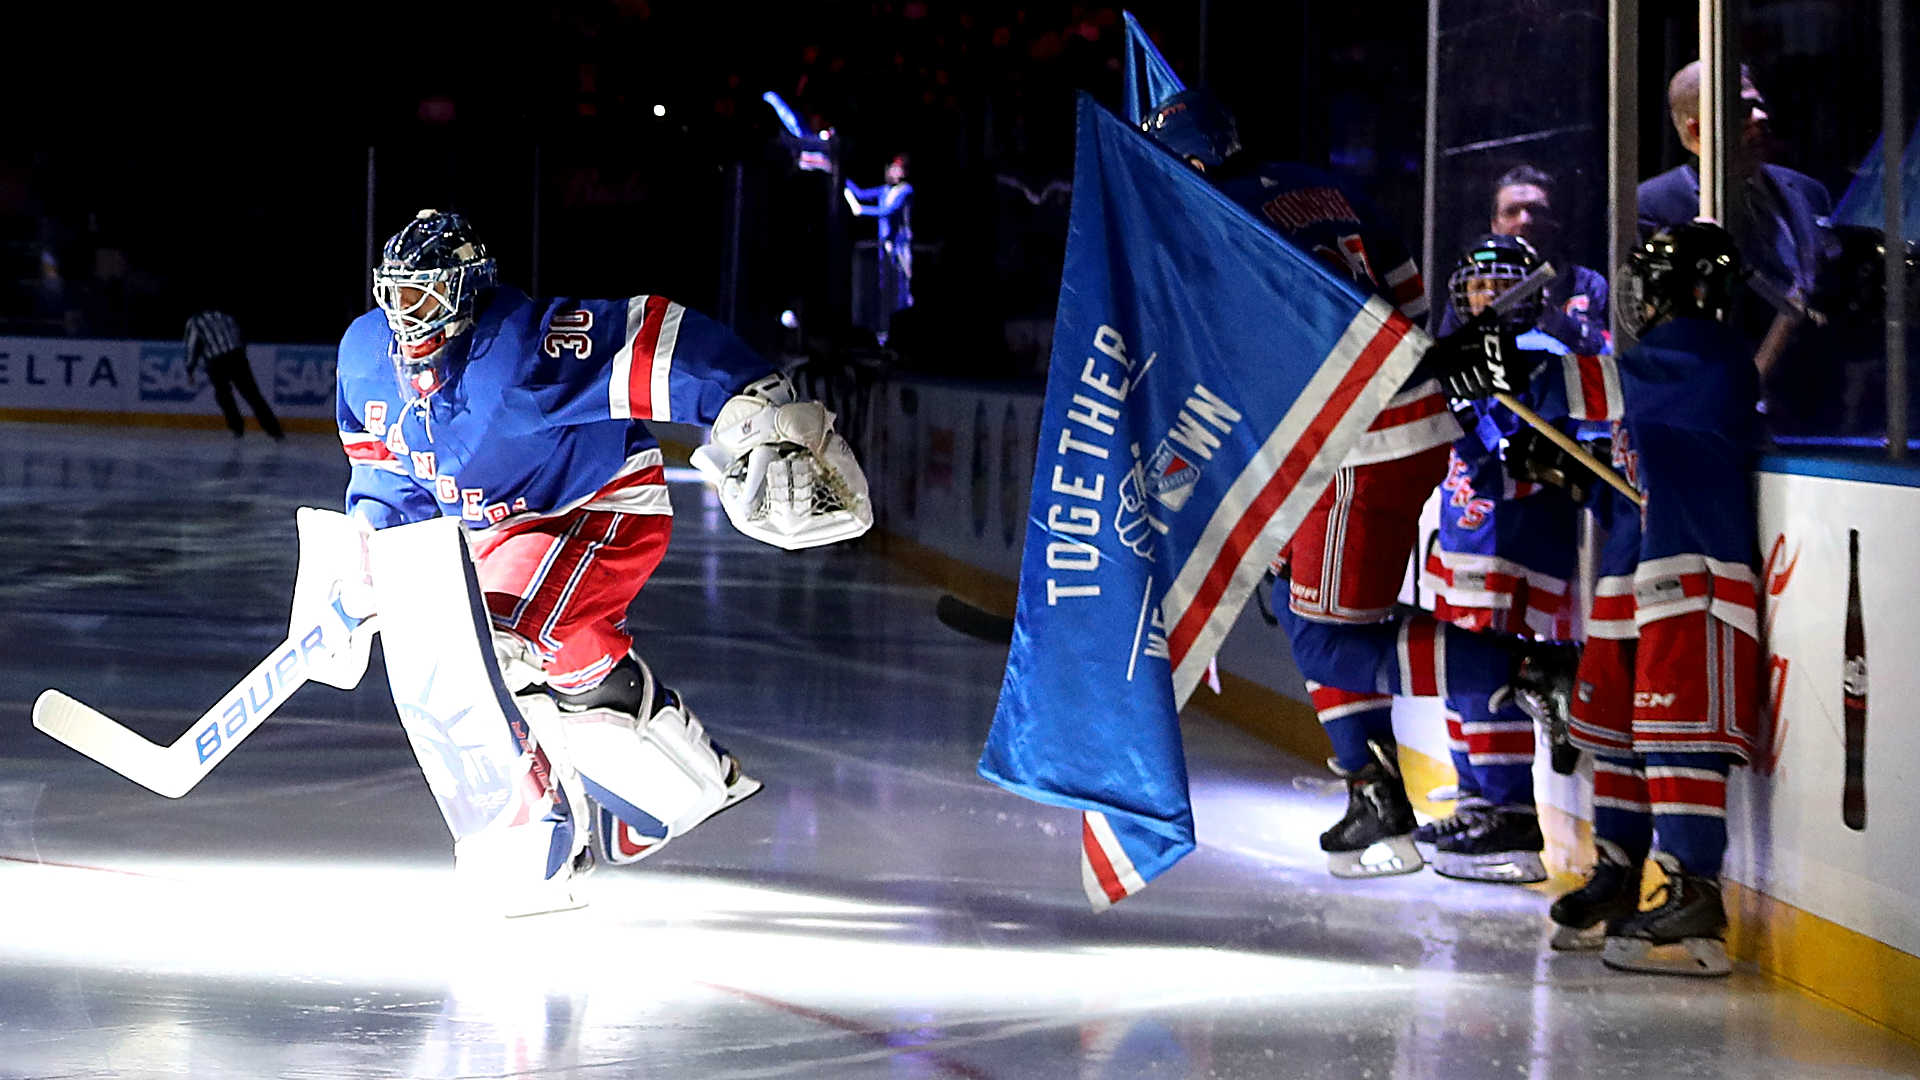 Rangers hold moment of silence to honor victims of New York attack